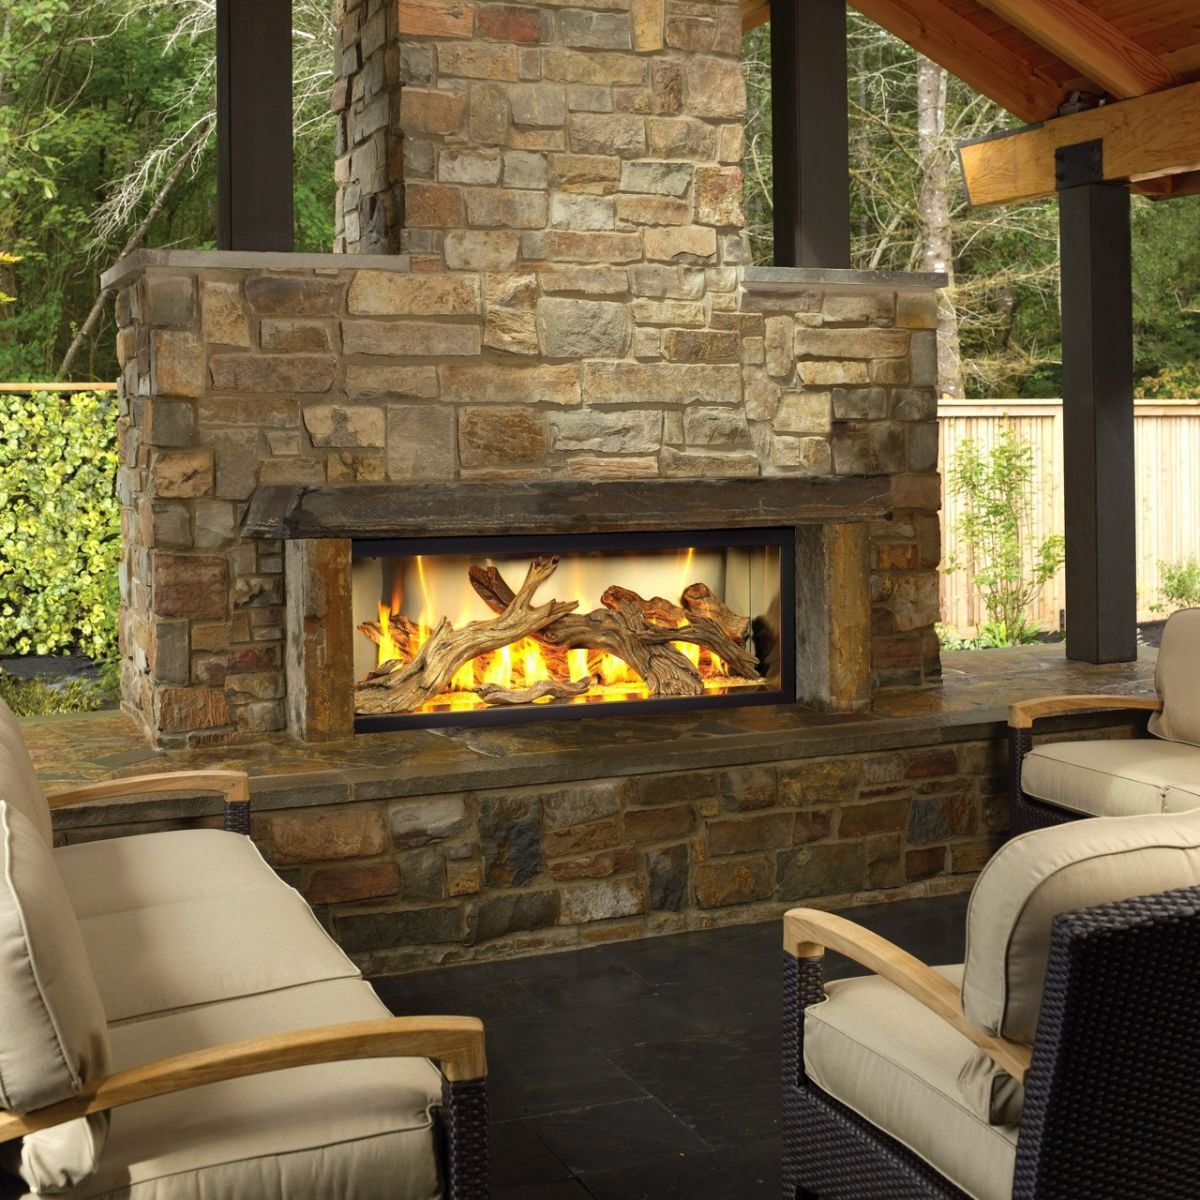 Outdoor fireplace designs colorado springs fire pits and for Outdoor fireplace designs plans